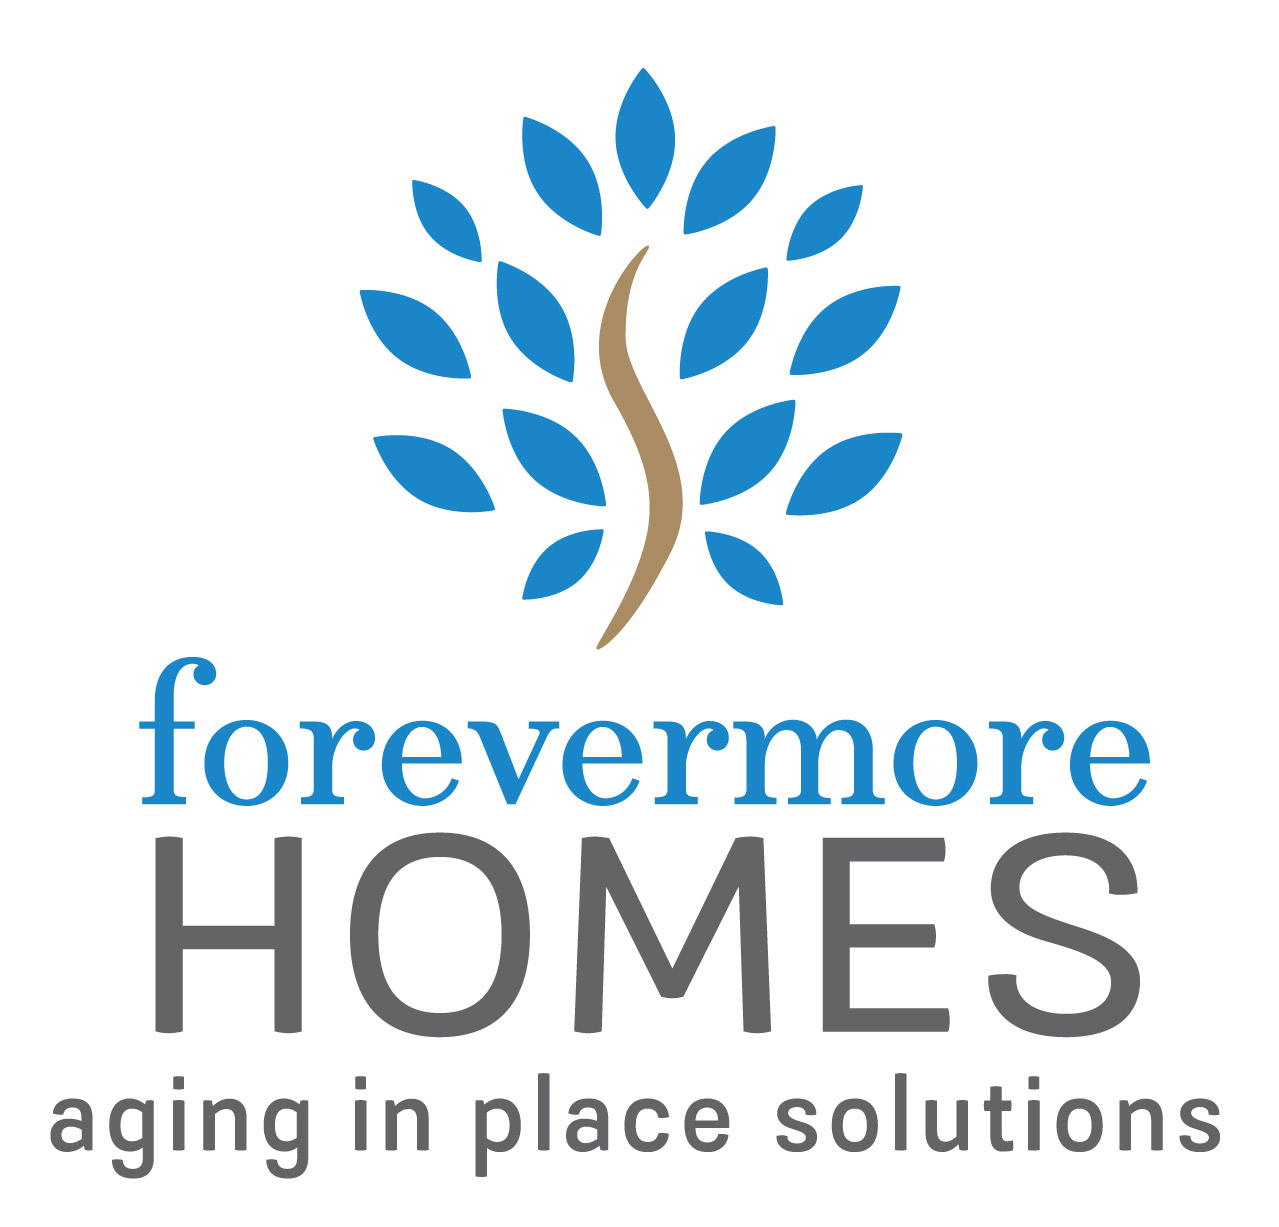 Forevermore-Homes-FINAL-LOGO-large